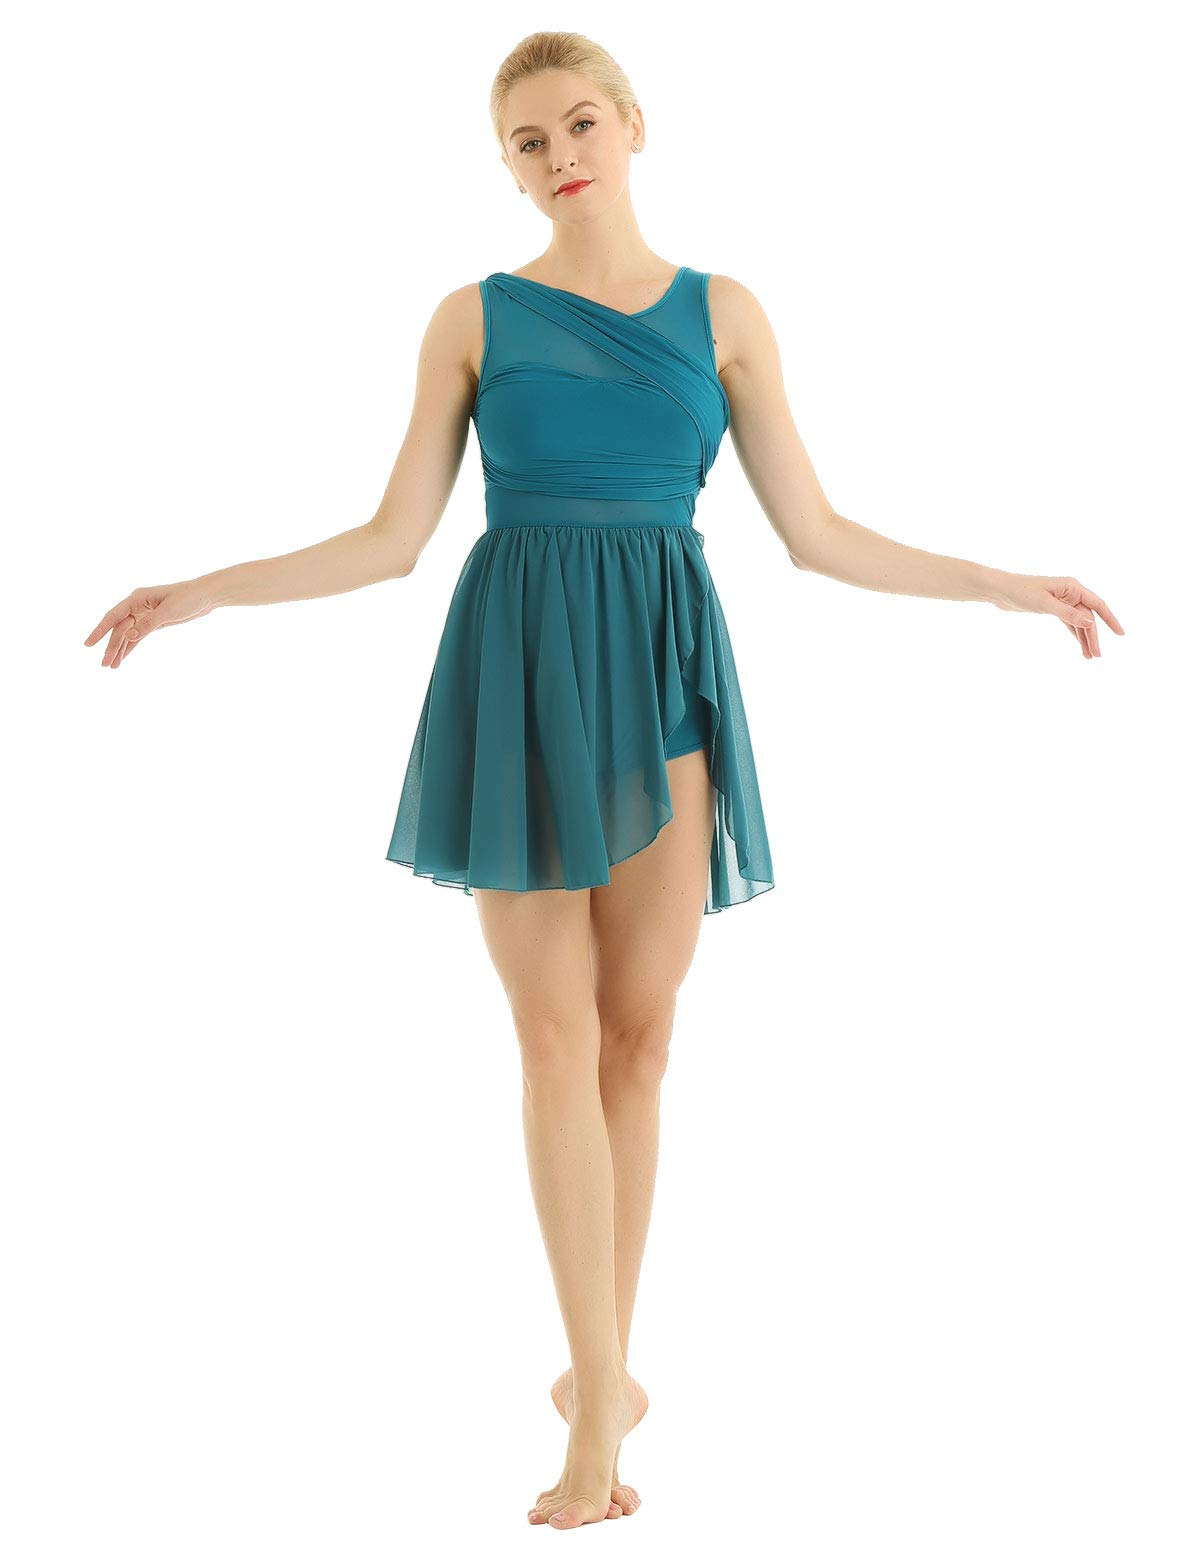 Available at Amazon: inhzoy Women's Lyrical Ballet Dance Dress Modern Contemporary Illusion Chiffon High-Low Skirted Leotard